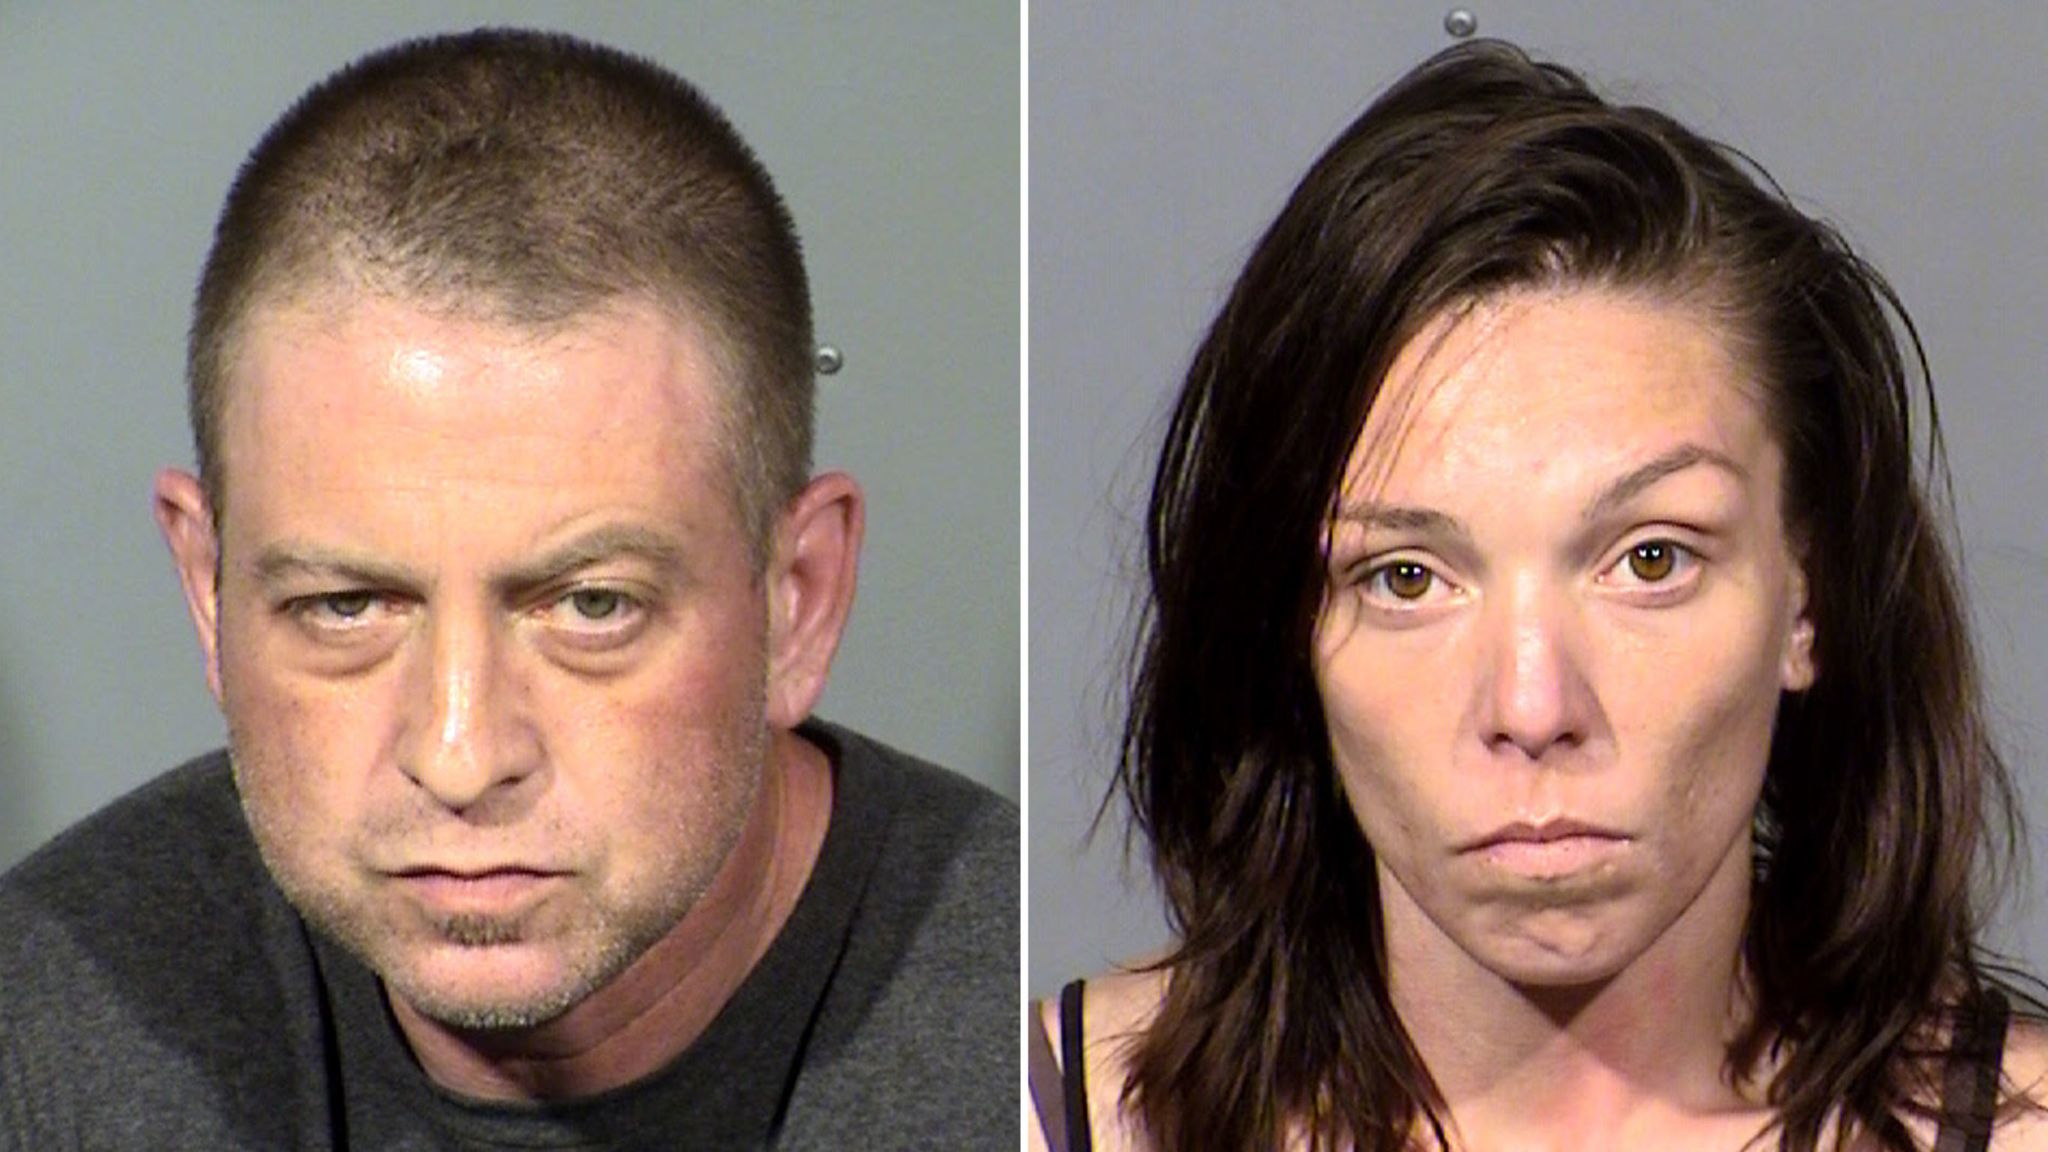 Two arrested as missing woman's body found encased in concrete in Nevada desert